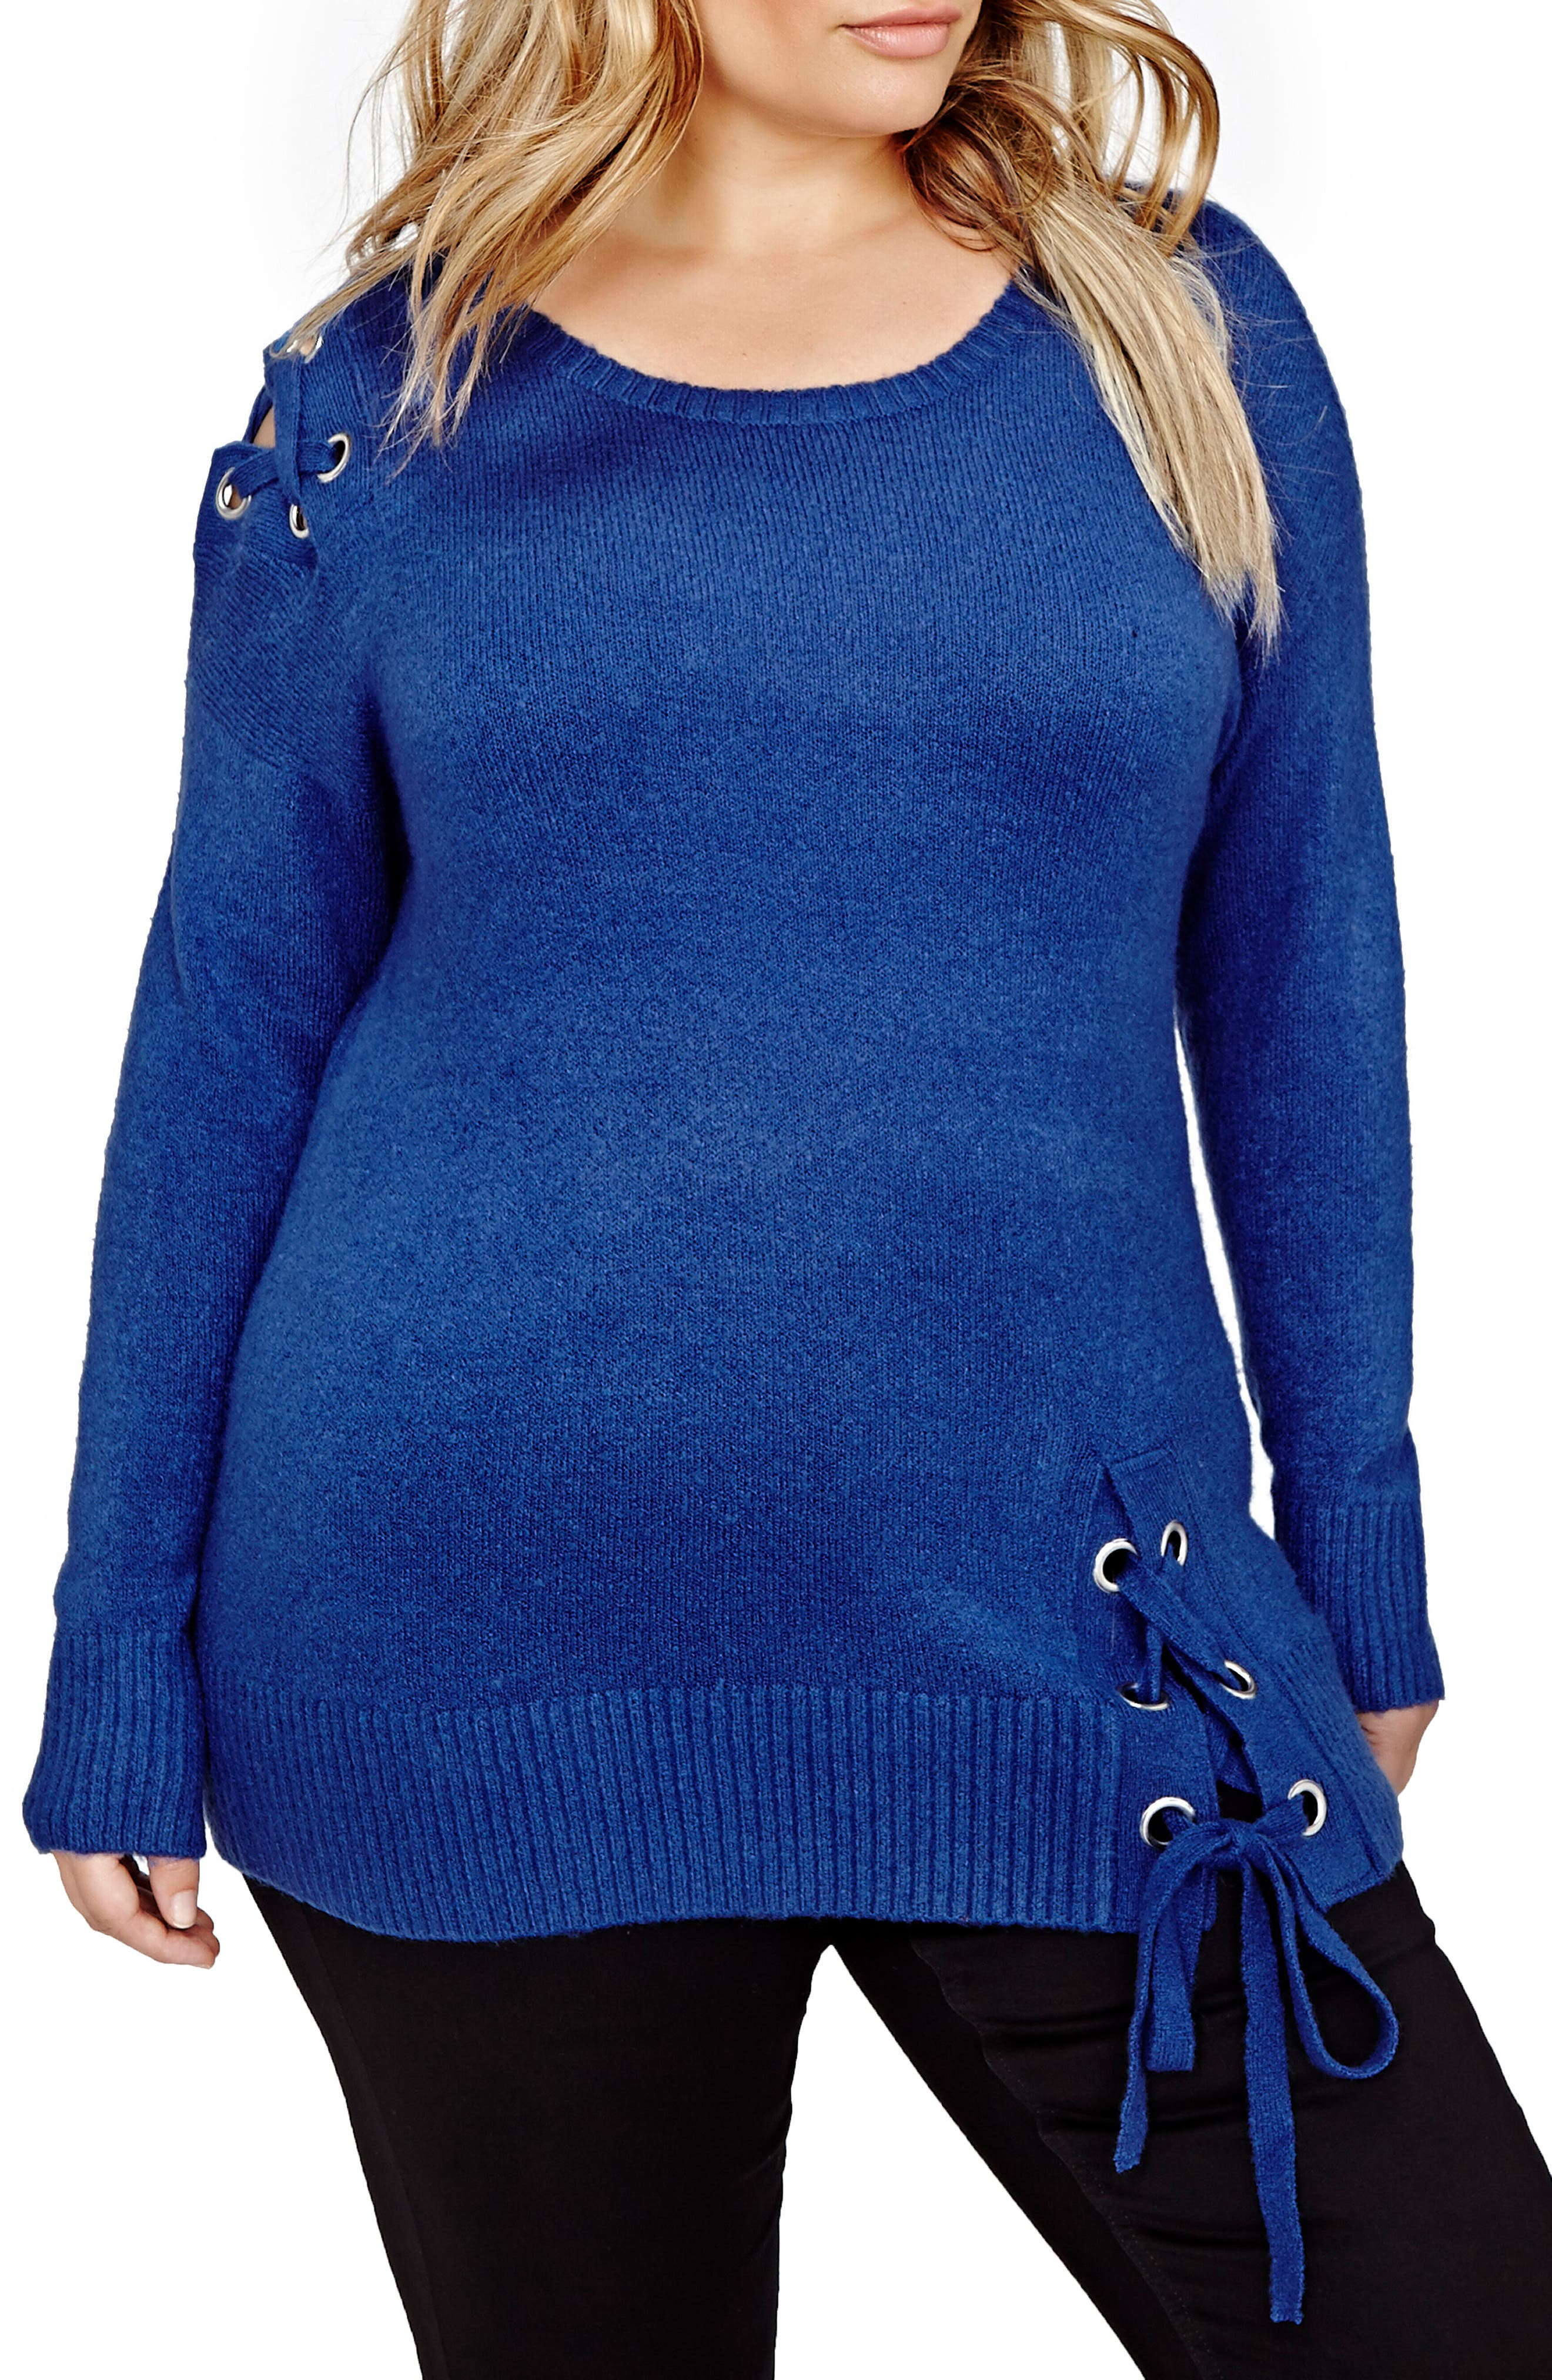 Lace-Up Sweater,                             Main thumbnail 1, color,                             423